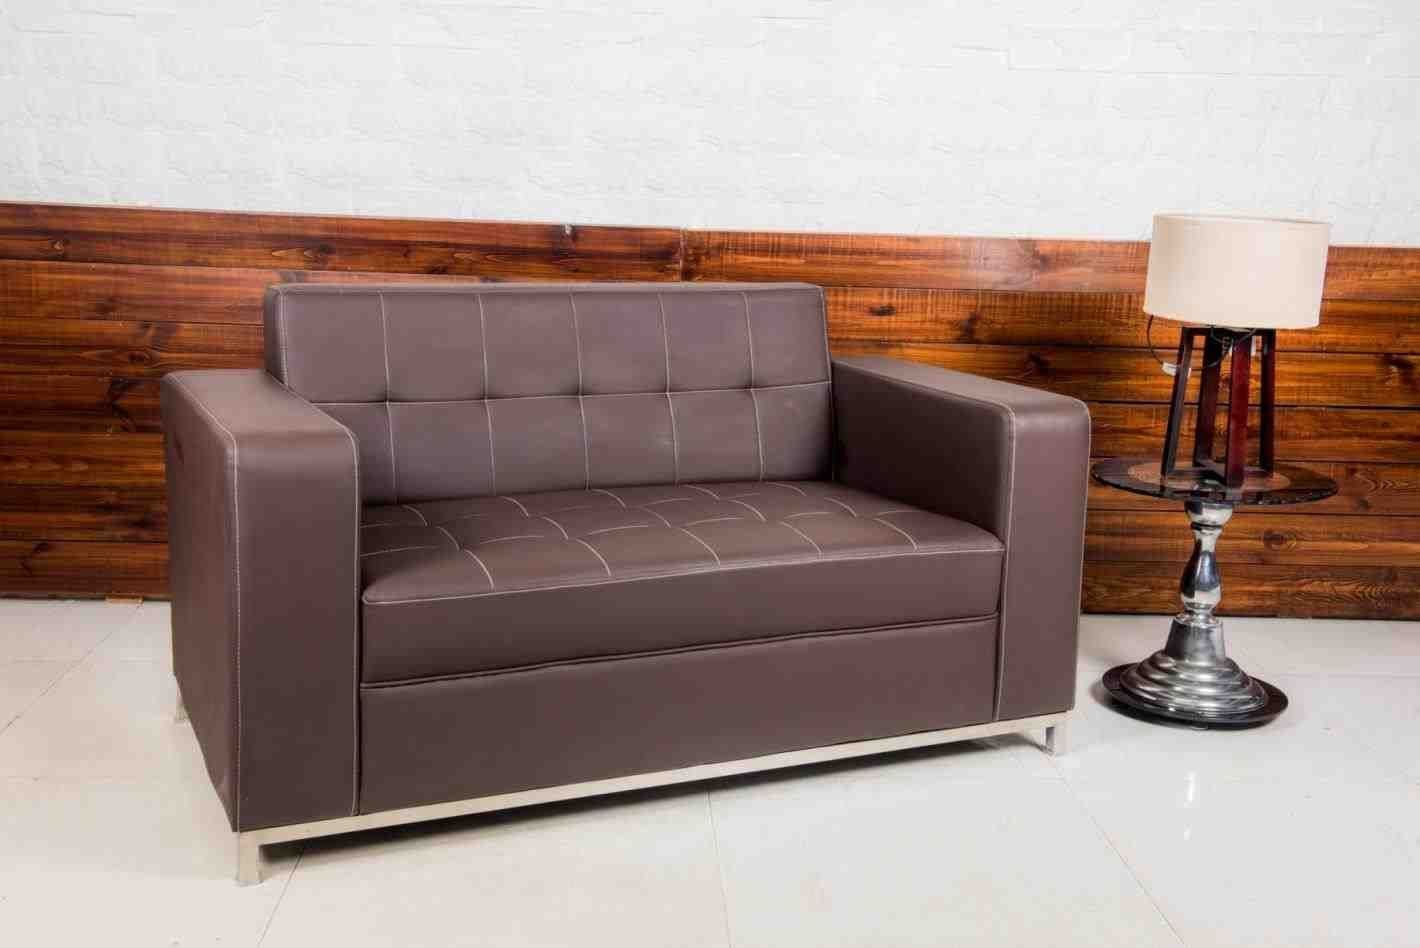 Buy furniture online pay monthly full size of sofafurniture sale